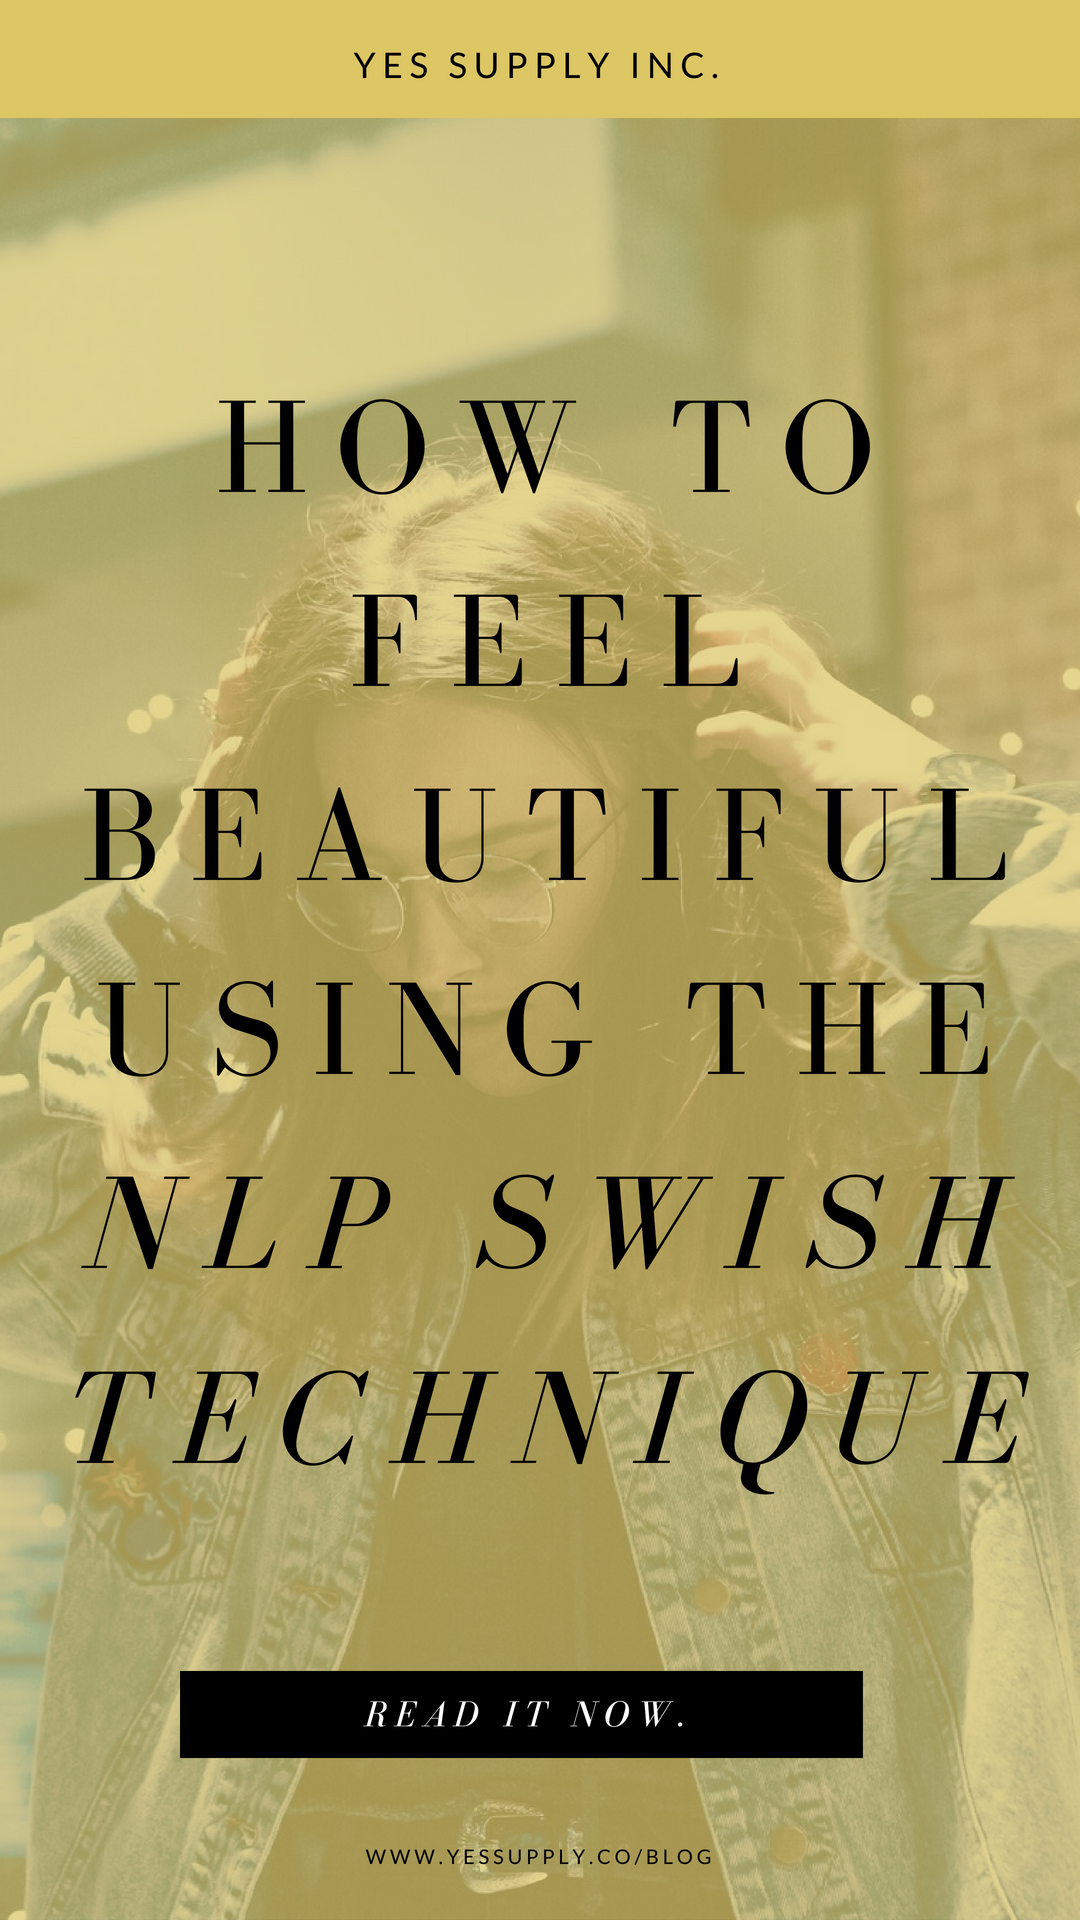 NLP Swish technique